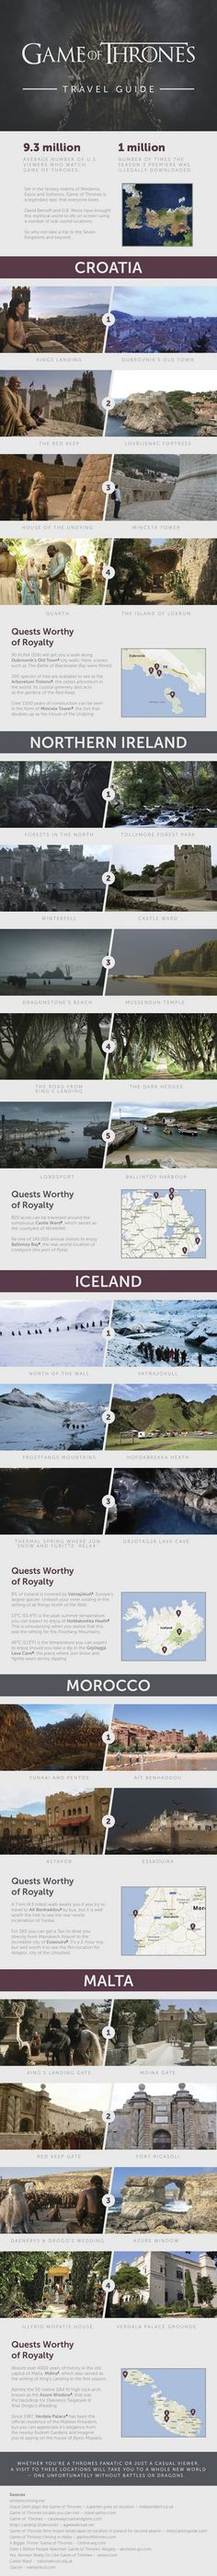 Game of Thrones Travel Guide Infographic Infographic